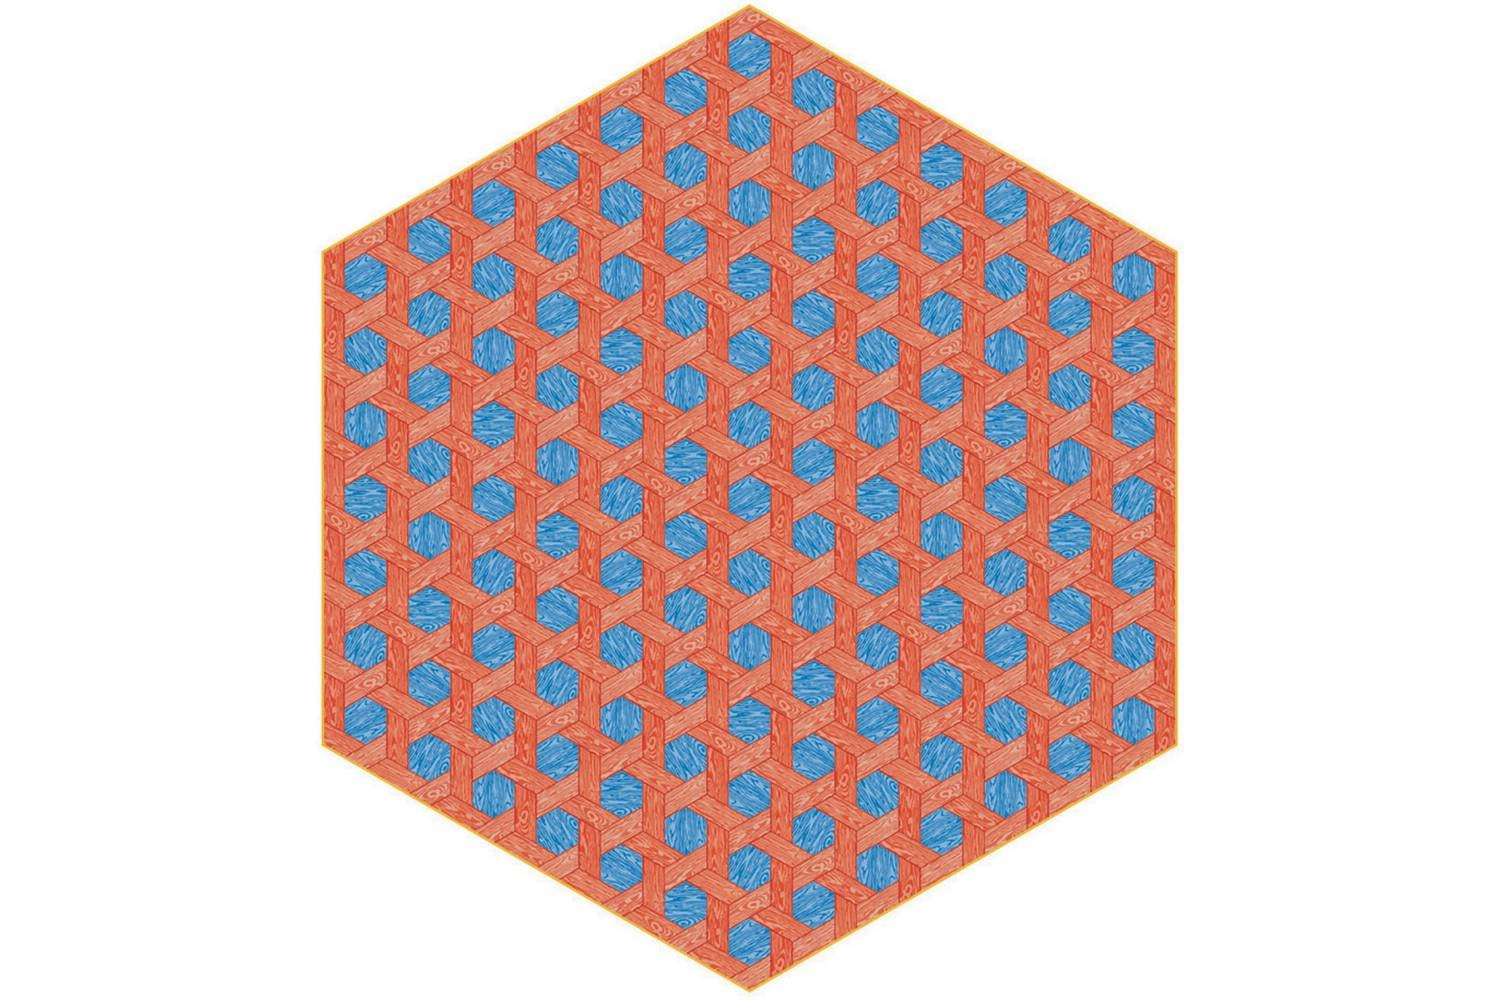 Hexagon Red/Blue Rug by Studio Job for Moooi Carpets